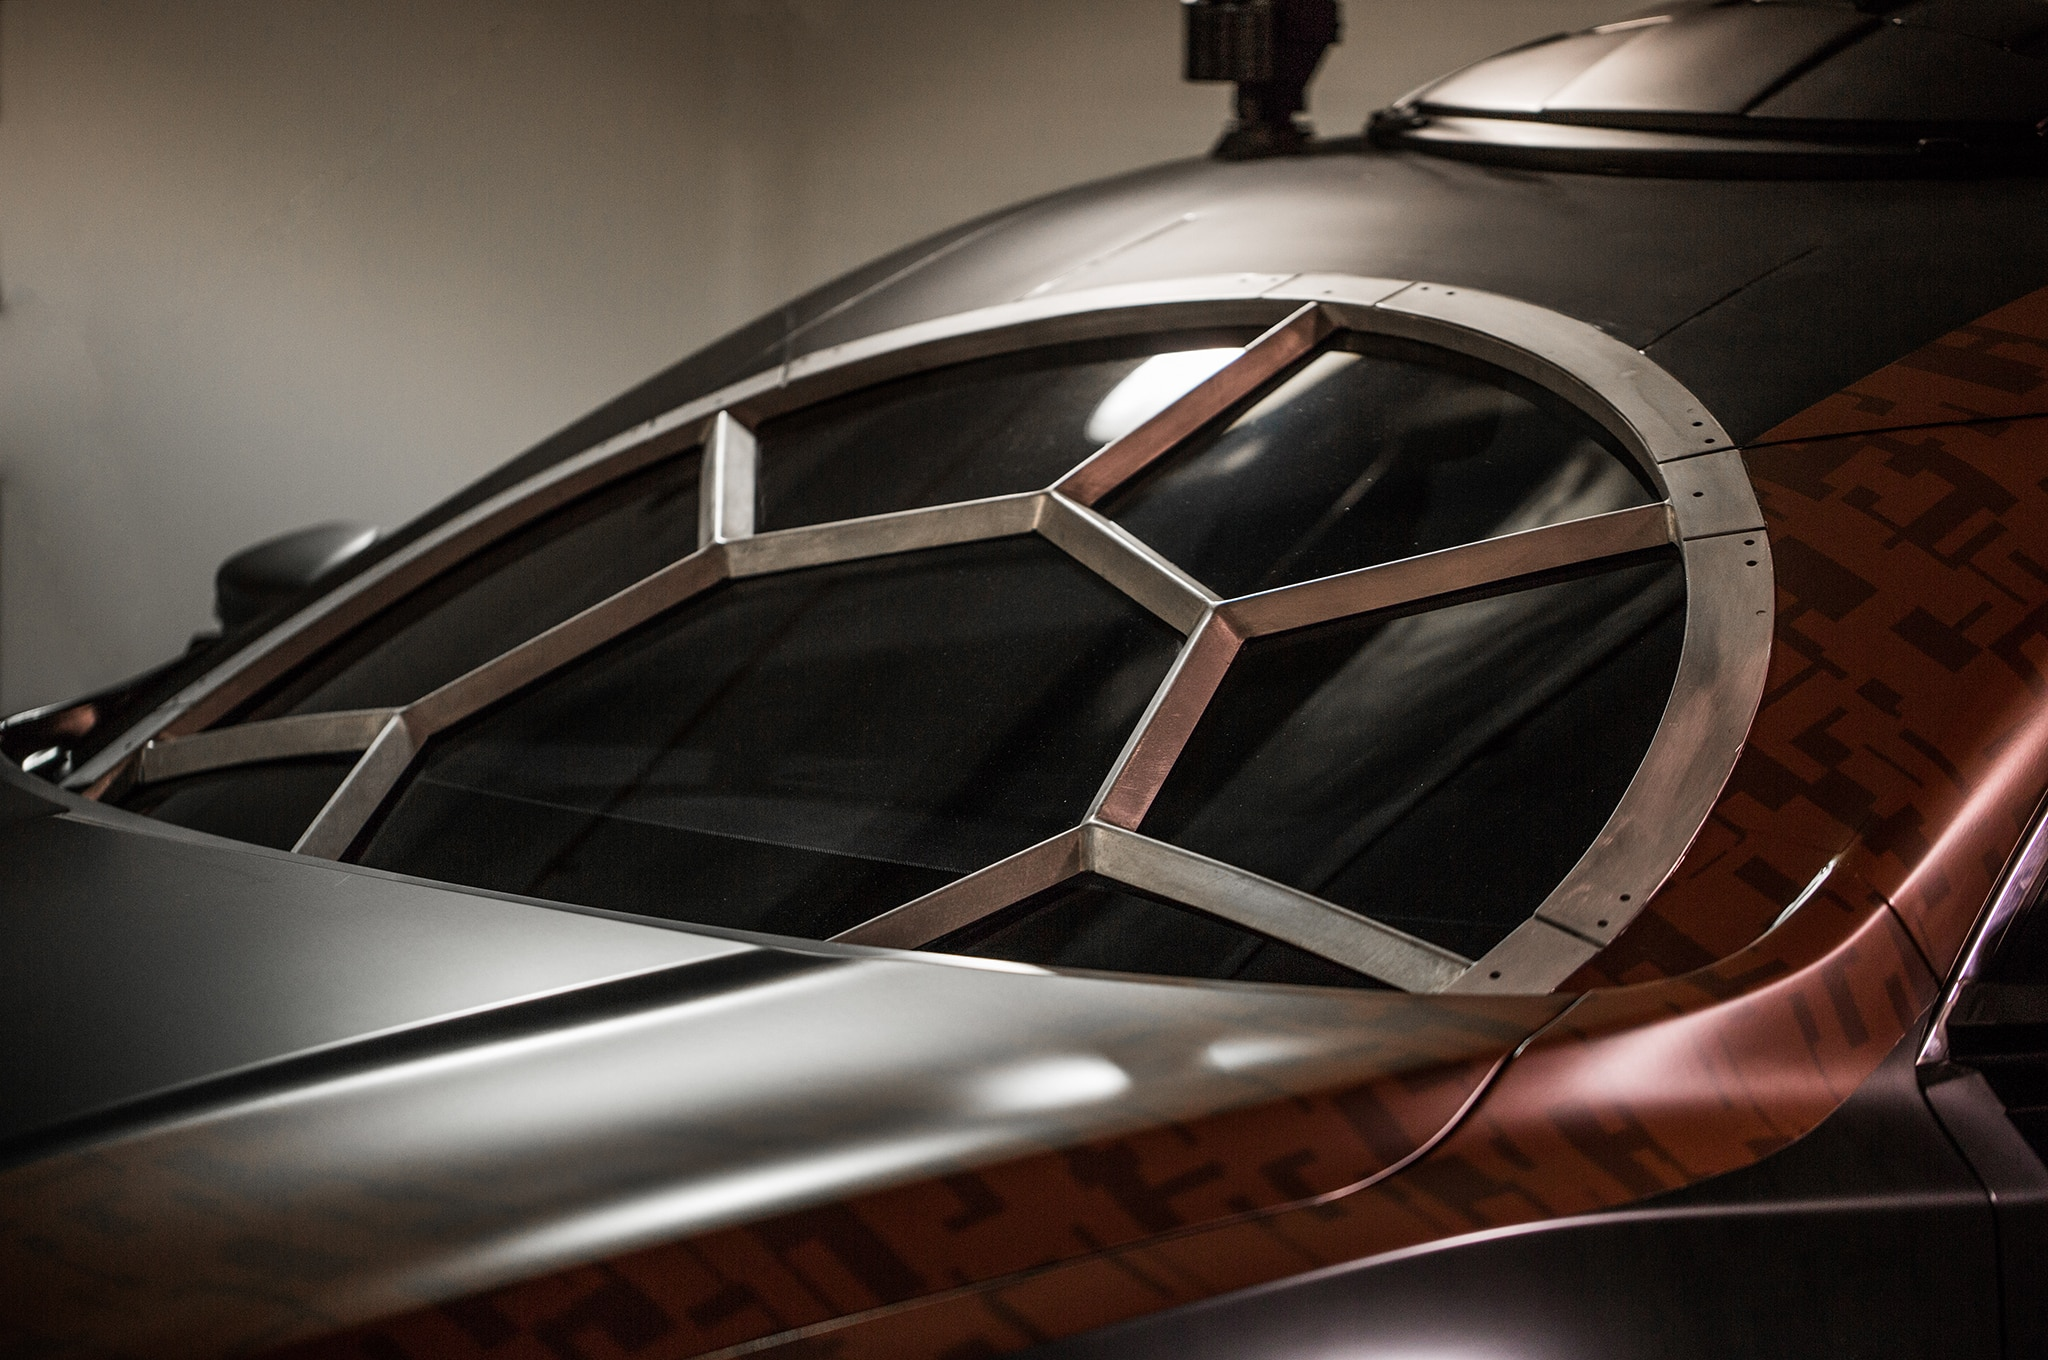 2018 Nissan Altima Show Car Special Forces TIE Fighter